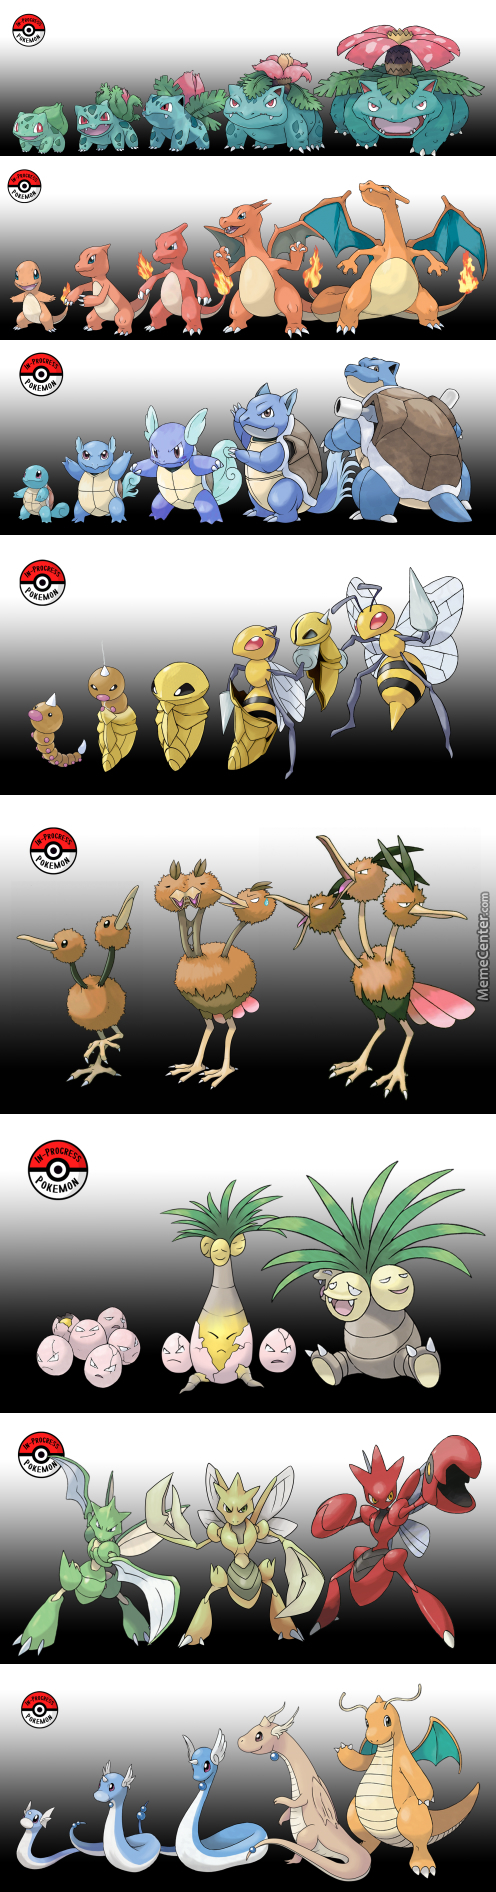 In-Progress Pokemon: What If Pokemon Didn't Evolve All At Once?